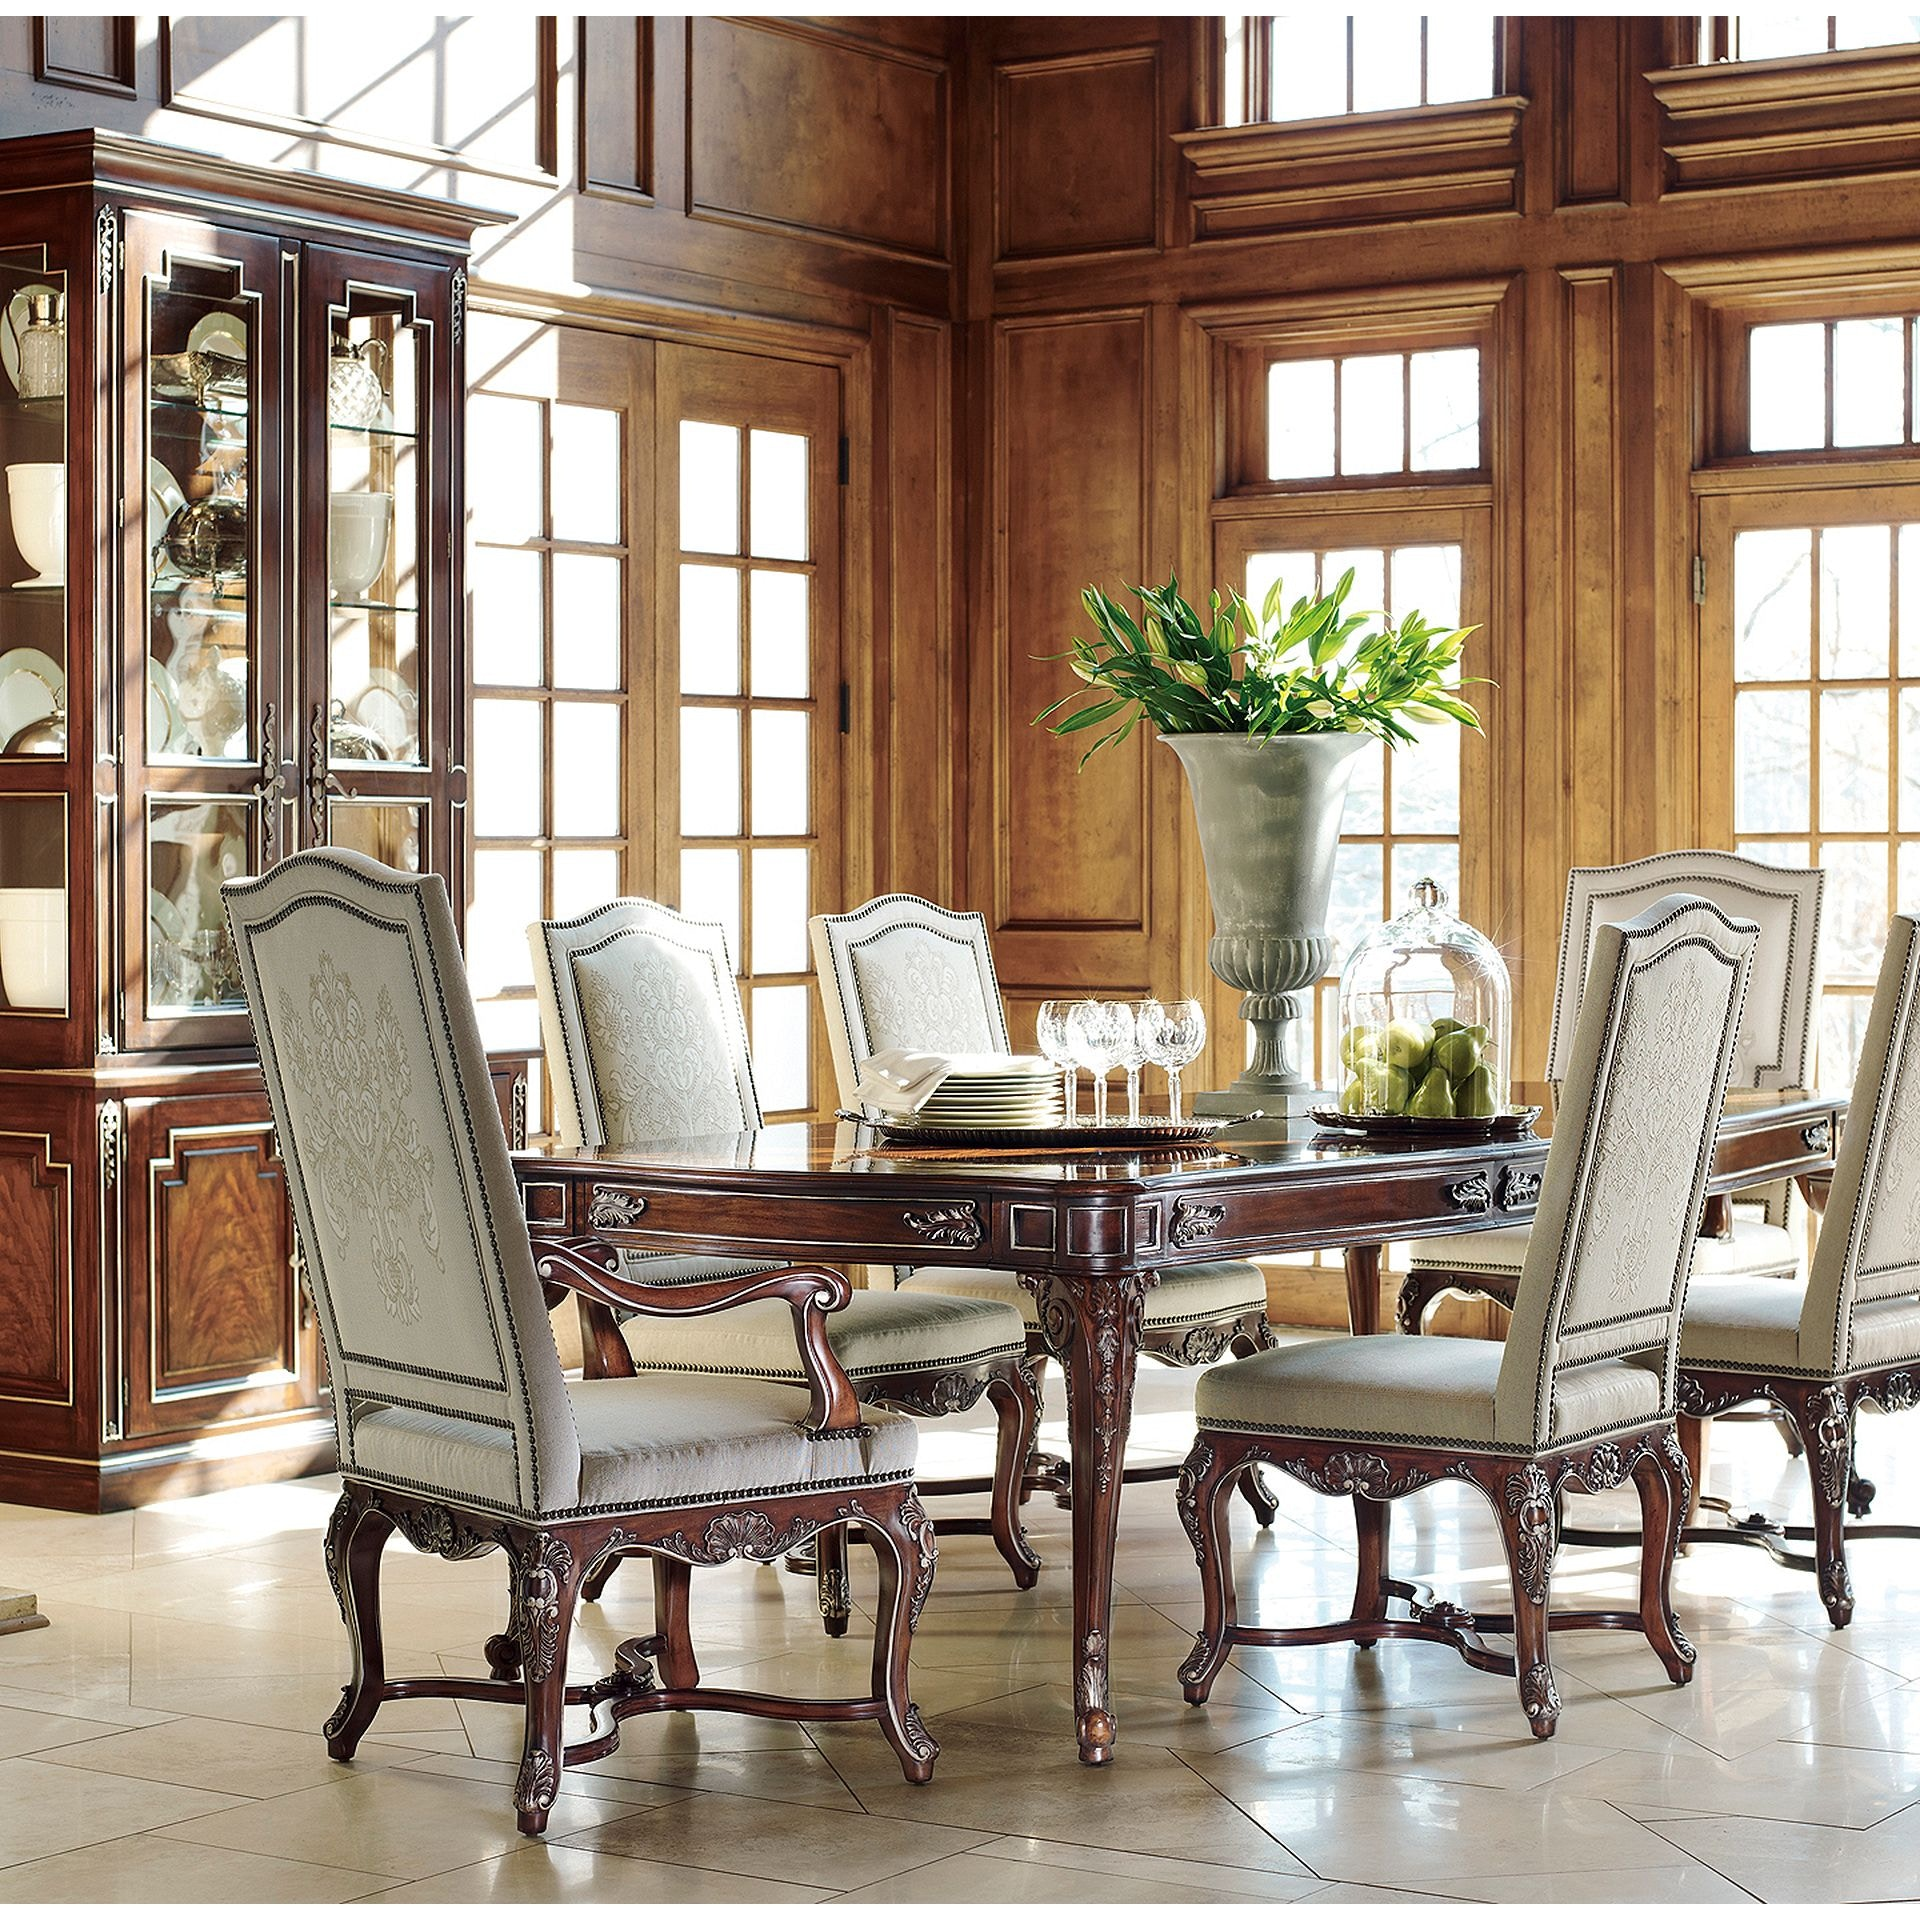 Amazing Henredon Furniture Marseilles II Dining Table 5040 20